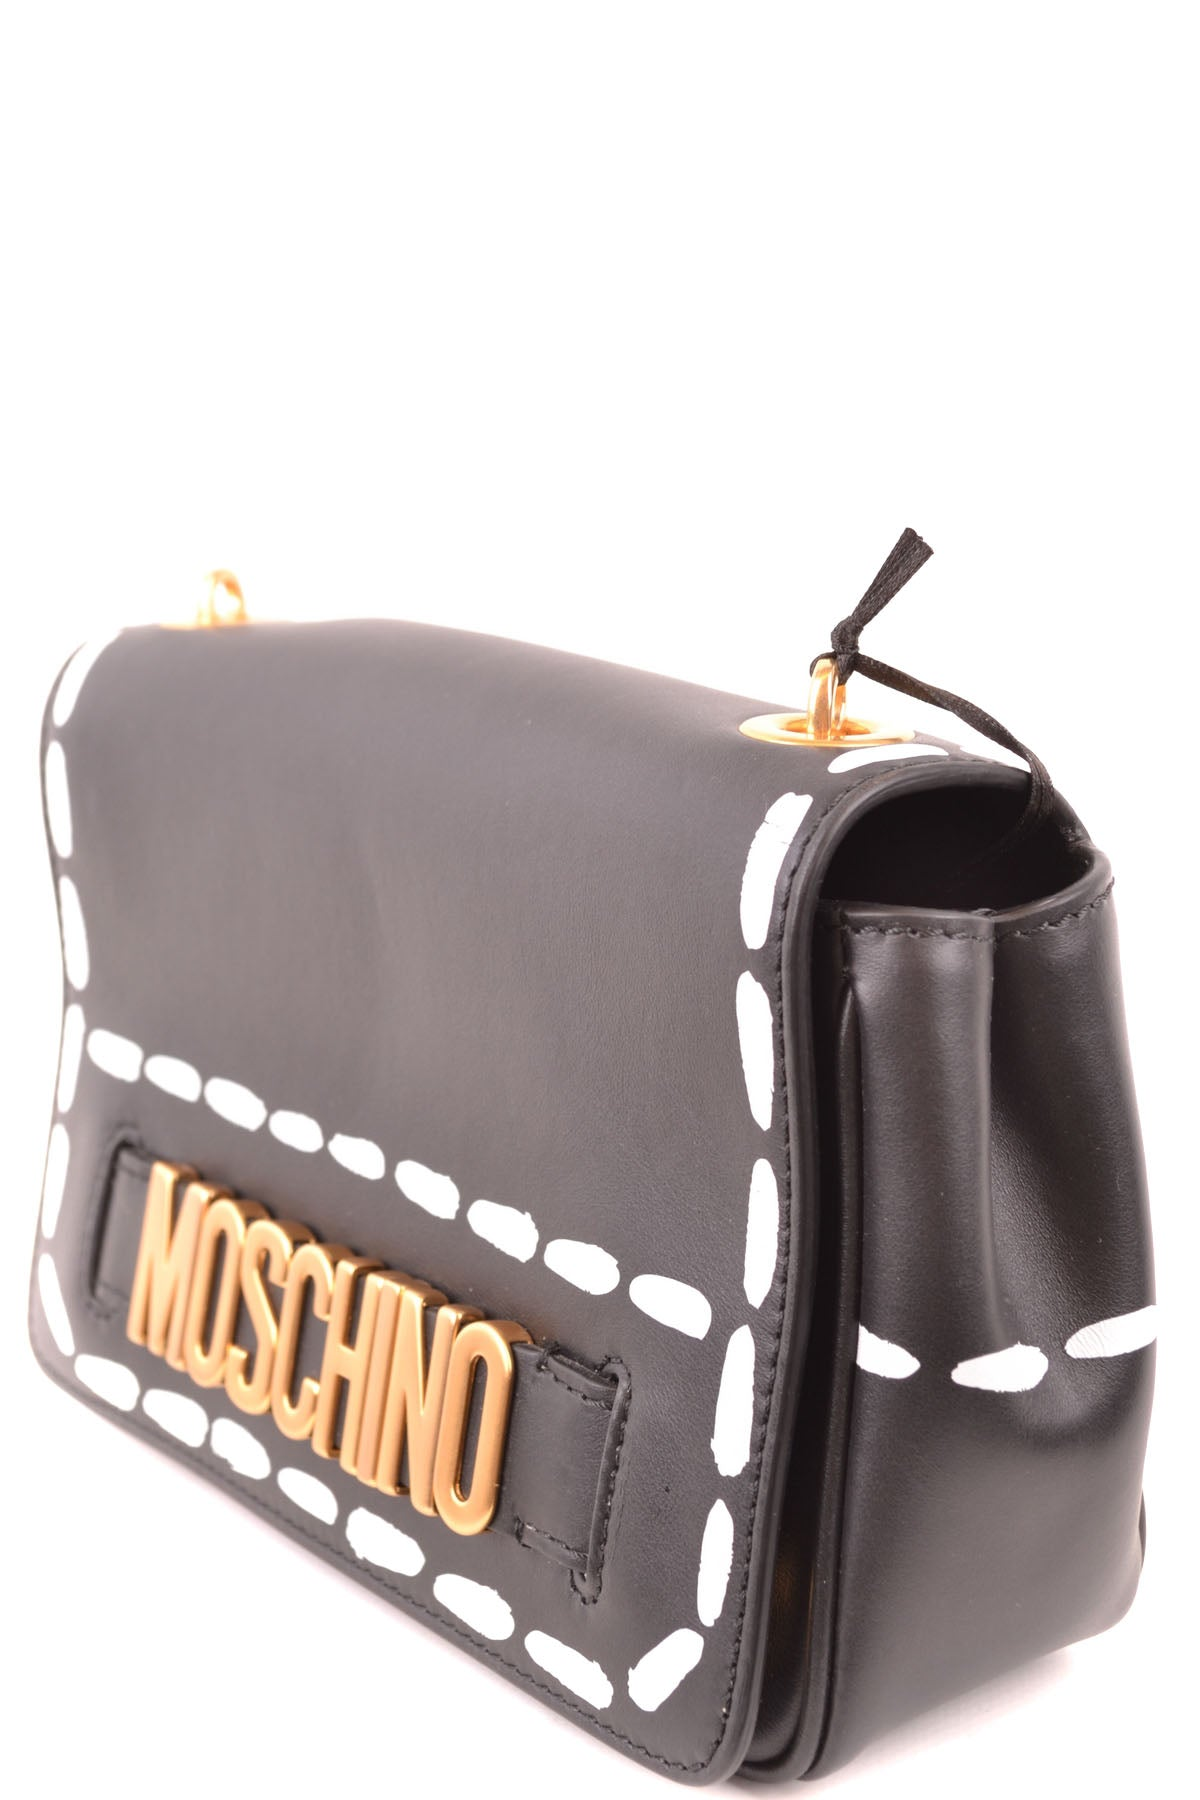 Bag Moschino--Product Details Type Of Accessory: Shoulder BagTerms: New With LabelYear: 2019Main Color: BlackGender: WomanMade In: ItalyManufacturer Part Number: 7A7424 80014555 U911Size: IntSeason: Spring / SummerBag Wxhxd (Cm): 21X14X7Composition: Leather 100%-Keyomi-Sook